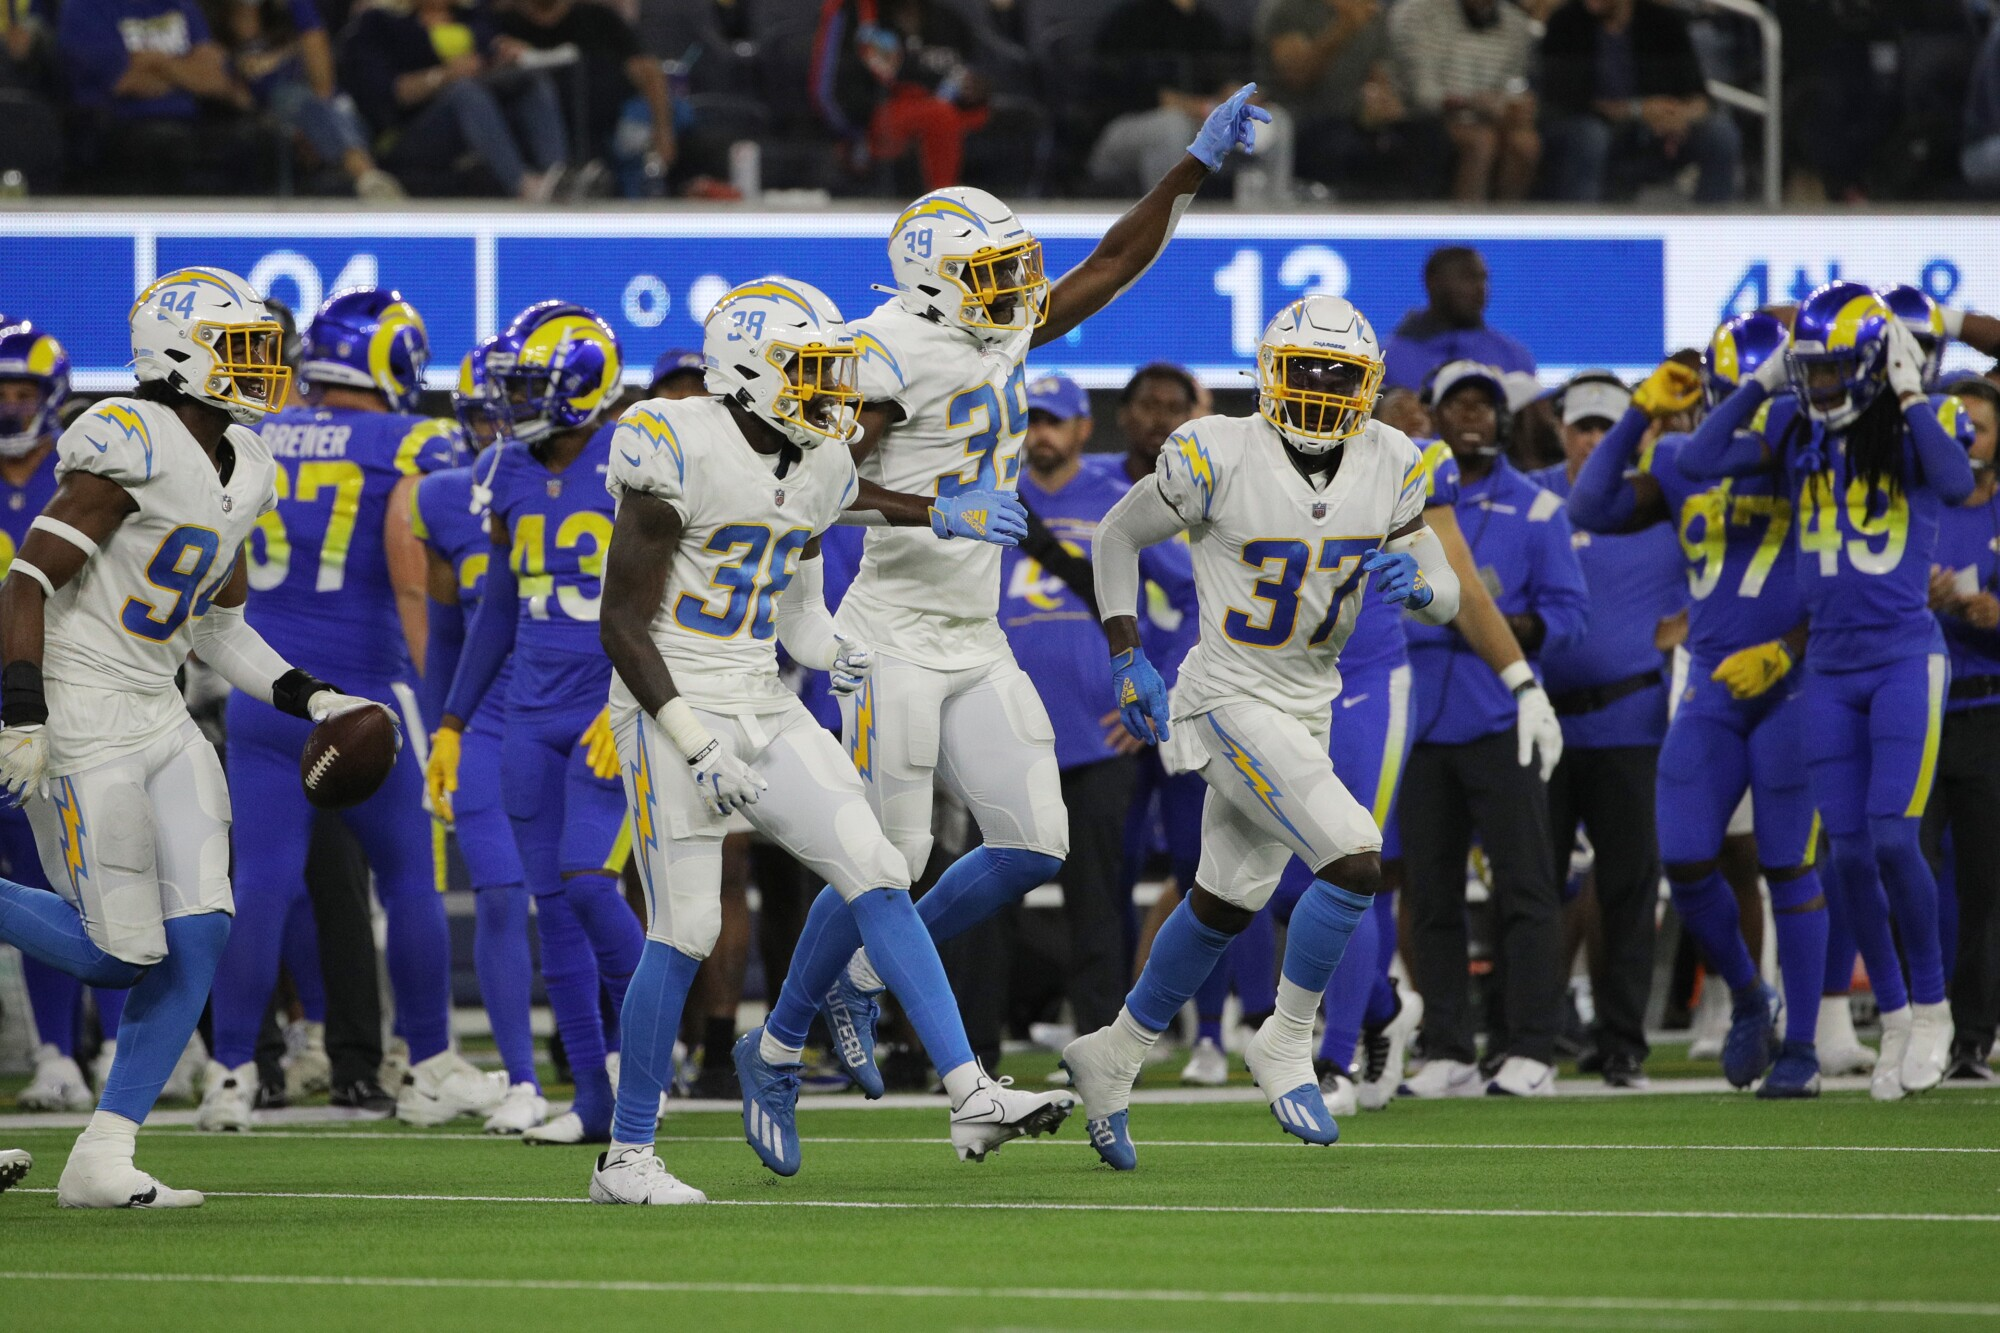 Chargers defensive back John Brannon celebrates with cornerback Donte Vaughn and defensive back Kemon Hall.